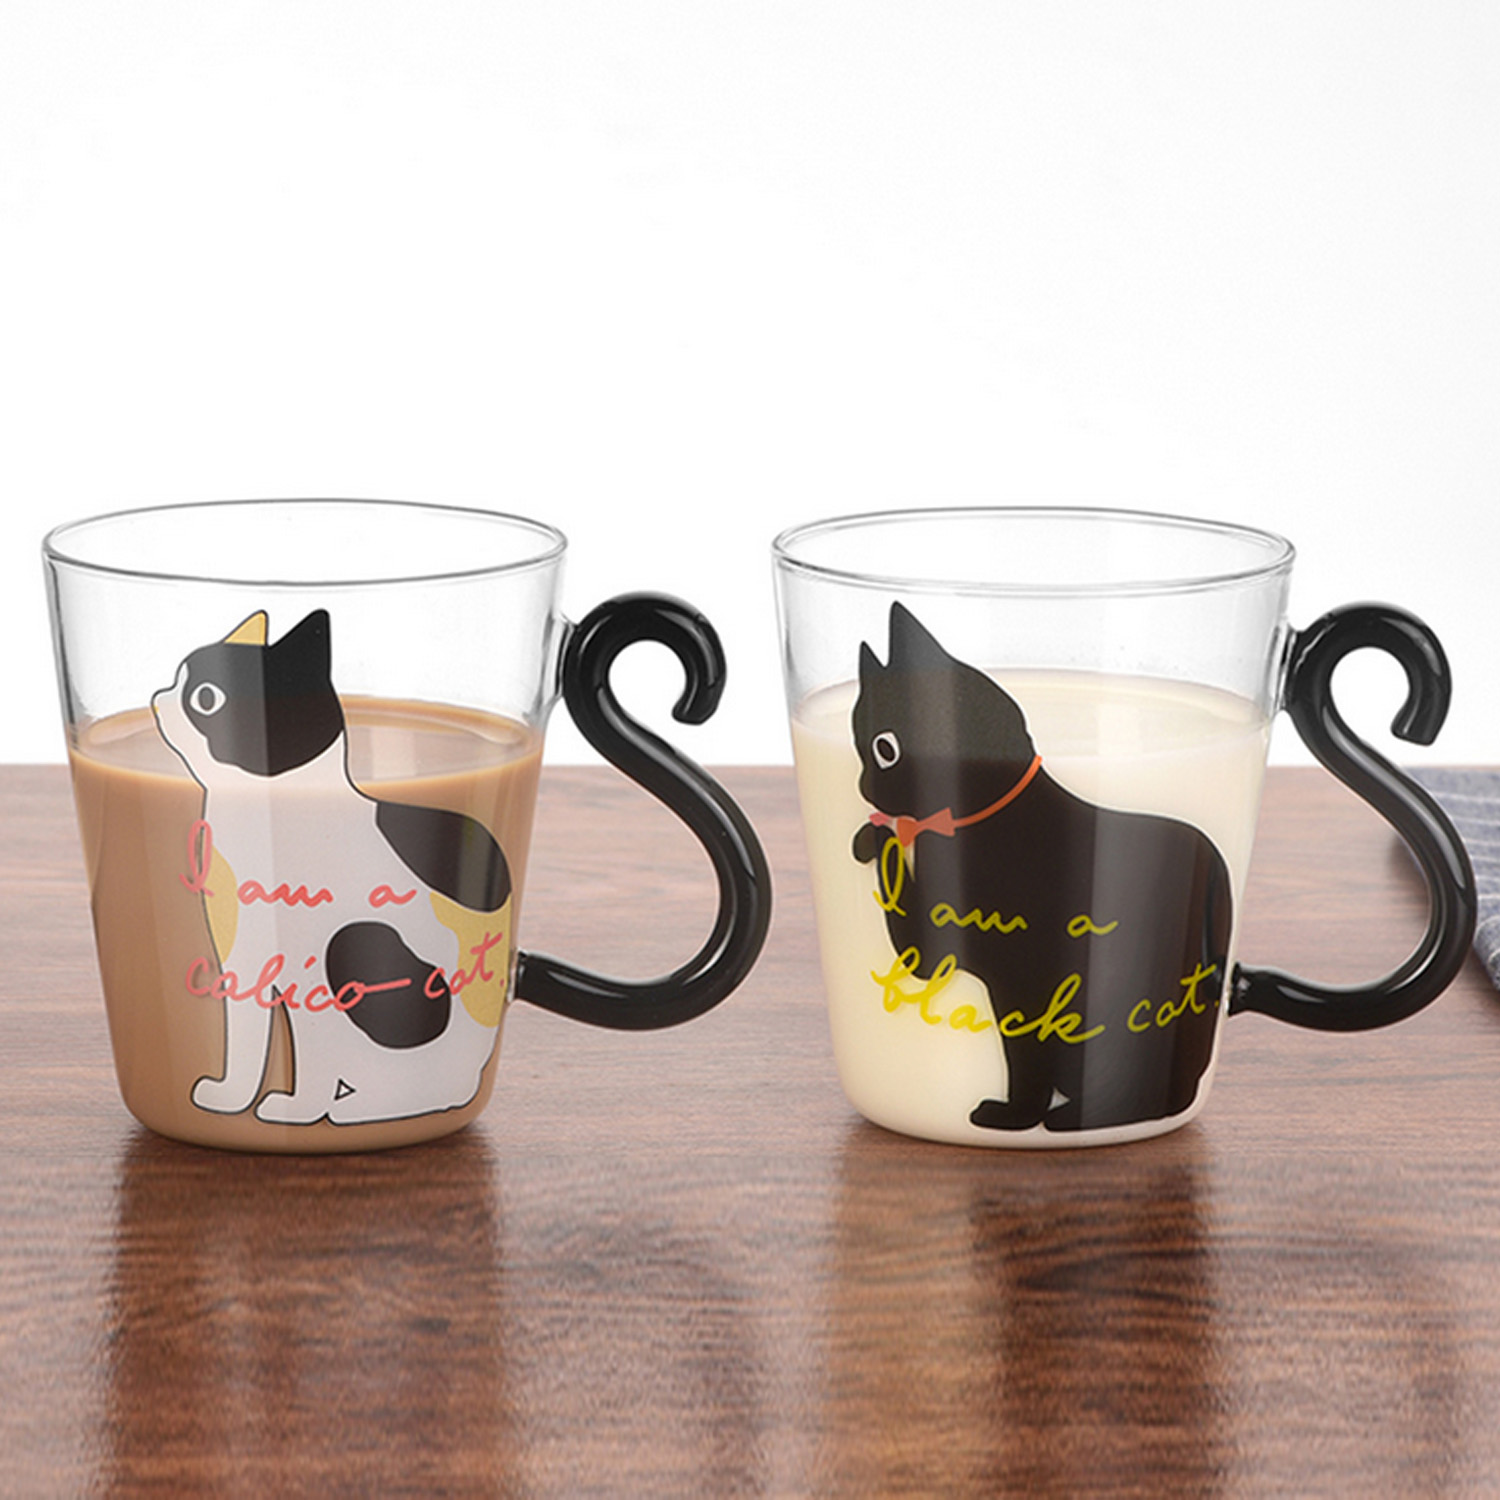 Behogar 250ml 8.45oz Cute <font><b>Cat</b></font> Pattern Mug Glass <font><b>Cups</b></font> with Kitty Tail Shaped Handle for Water Milk Coffee Drink Home Decor image